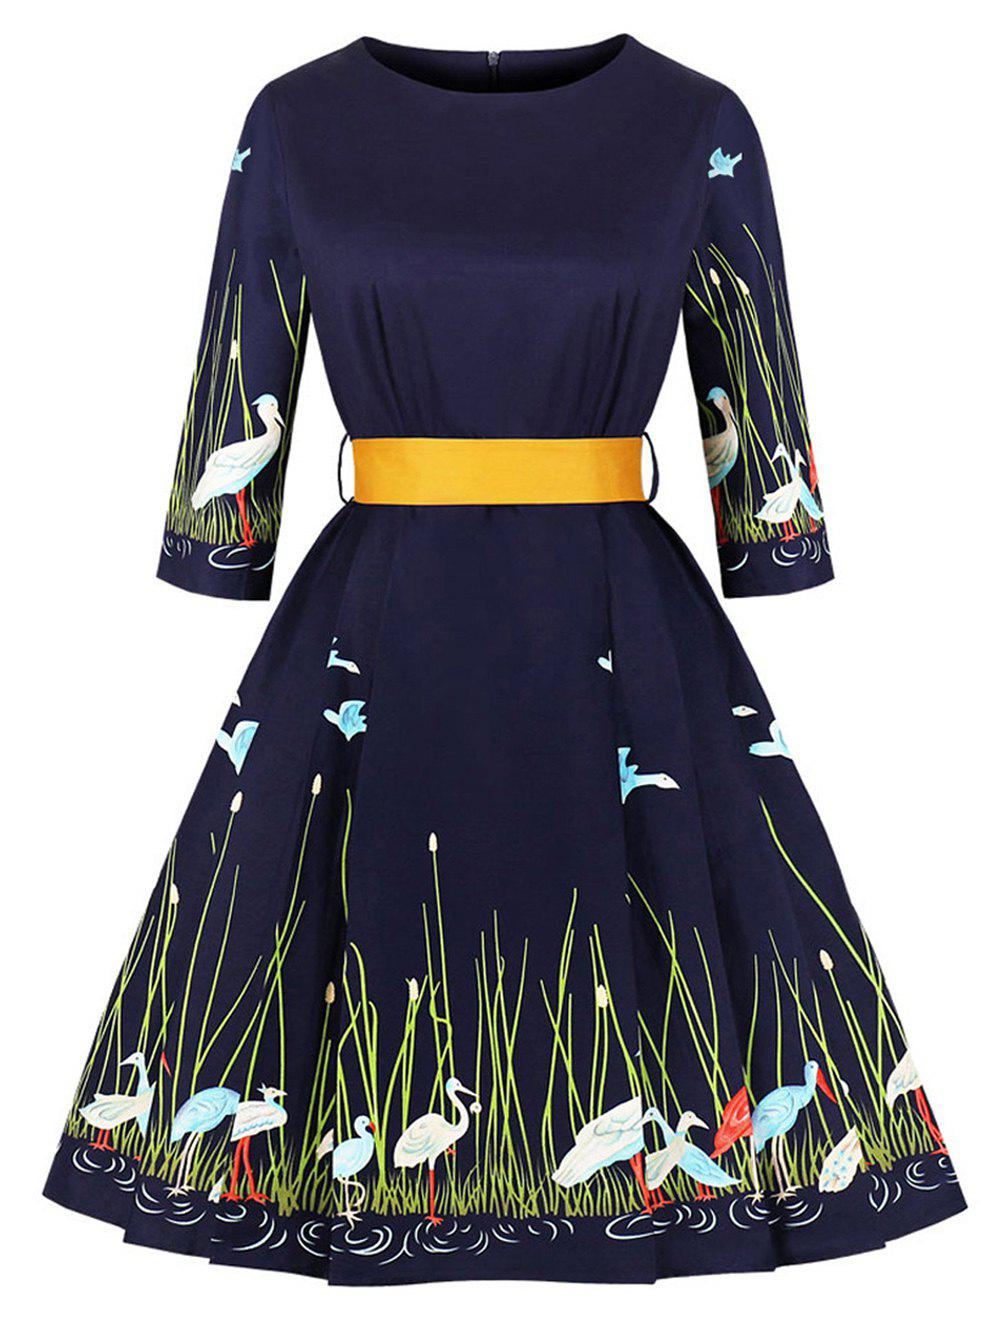 Outfits Hepburn Vintage Series Women Dress Spring And Summer Round Neck Swan Printing Design 3/4 Sleeve Belt Corset Dress